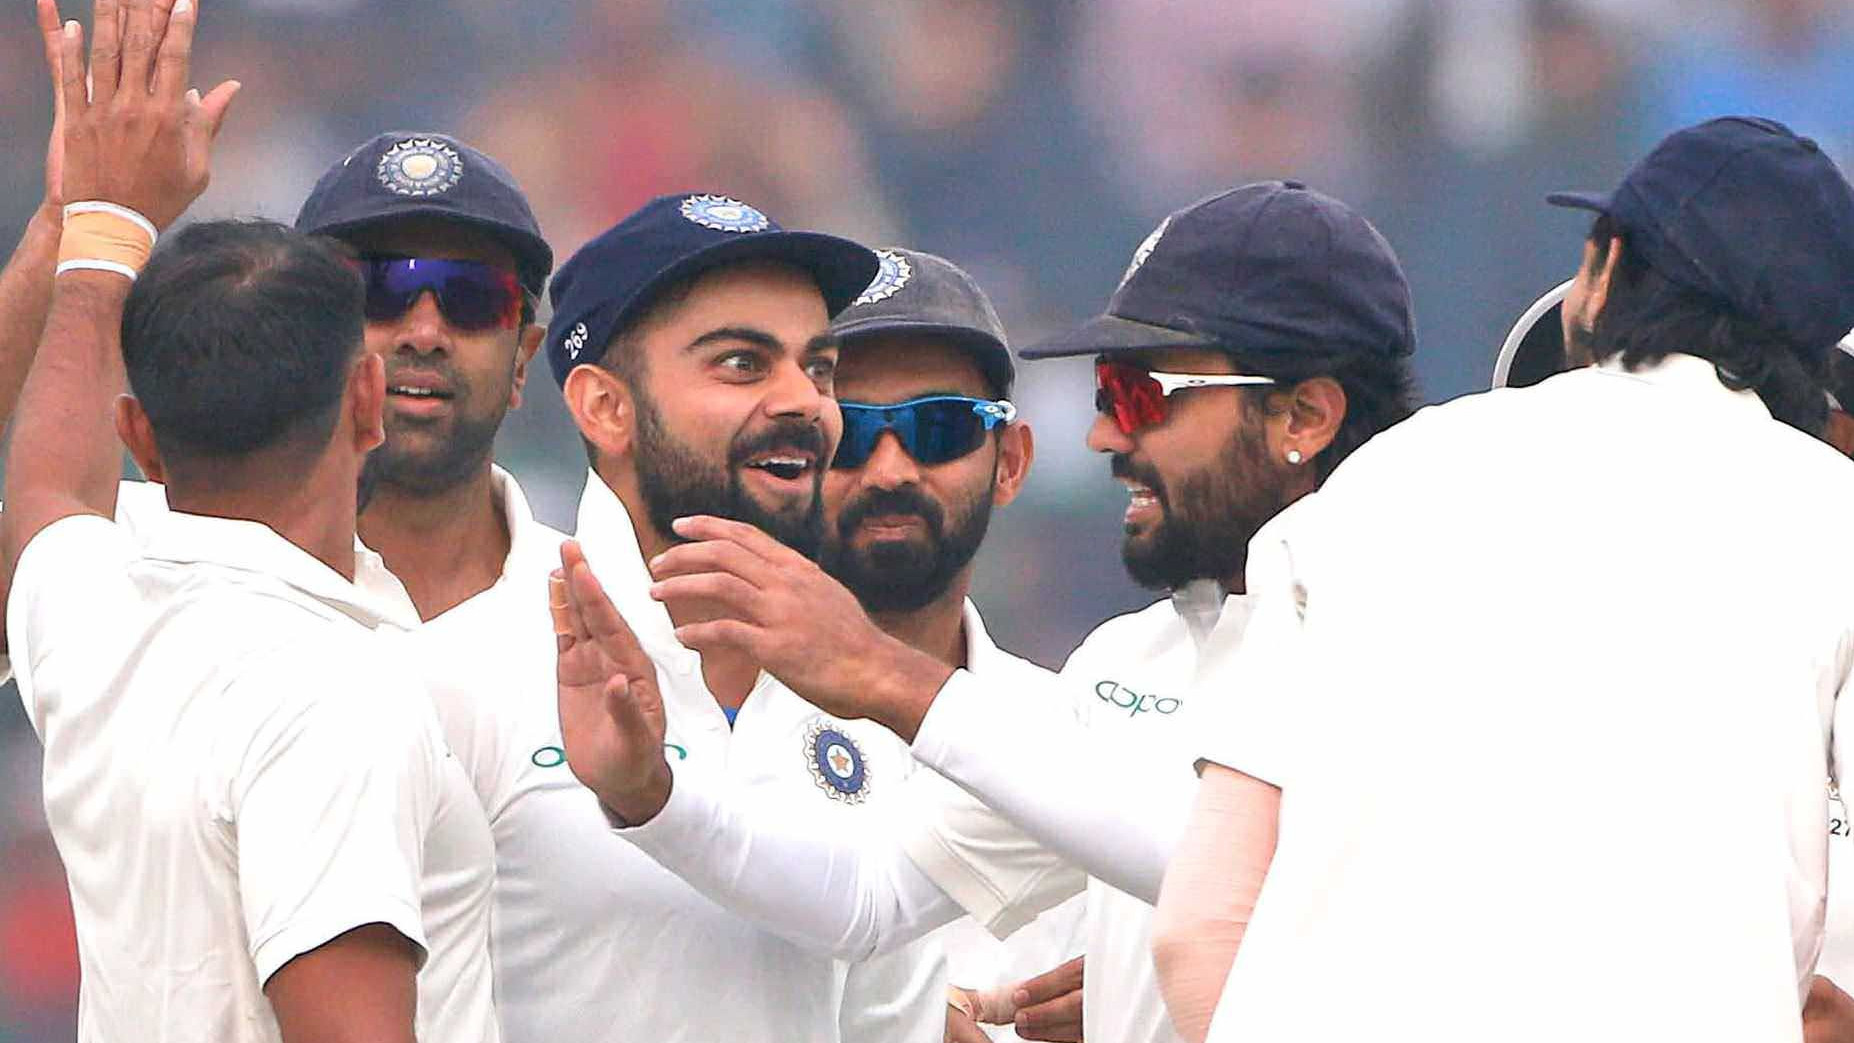 ENG v IND 2018: Virat Kohli posts an emotional message for the fans after Lord's debacle